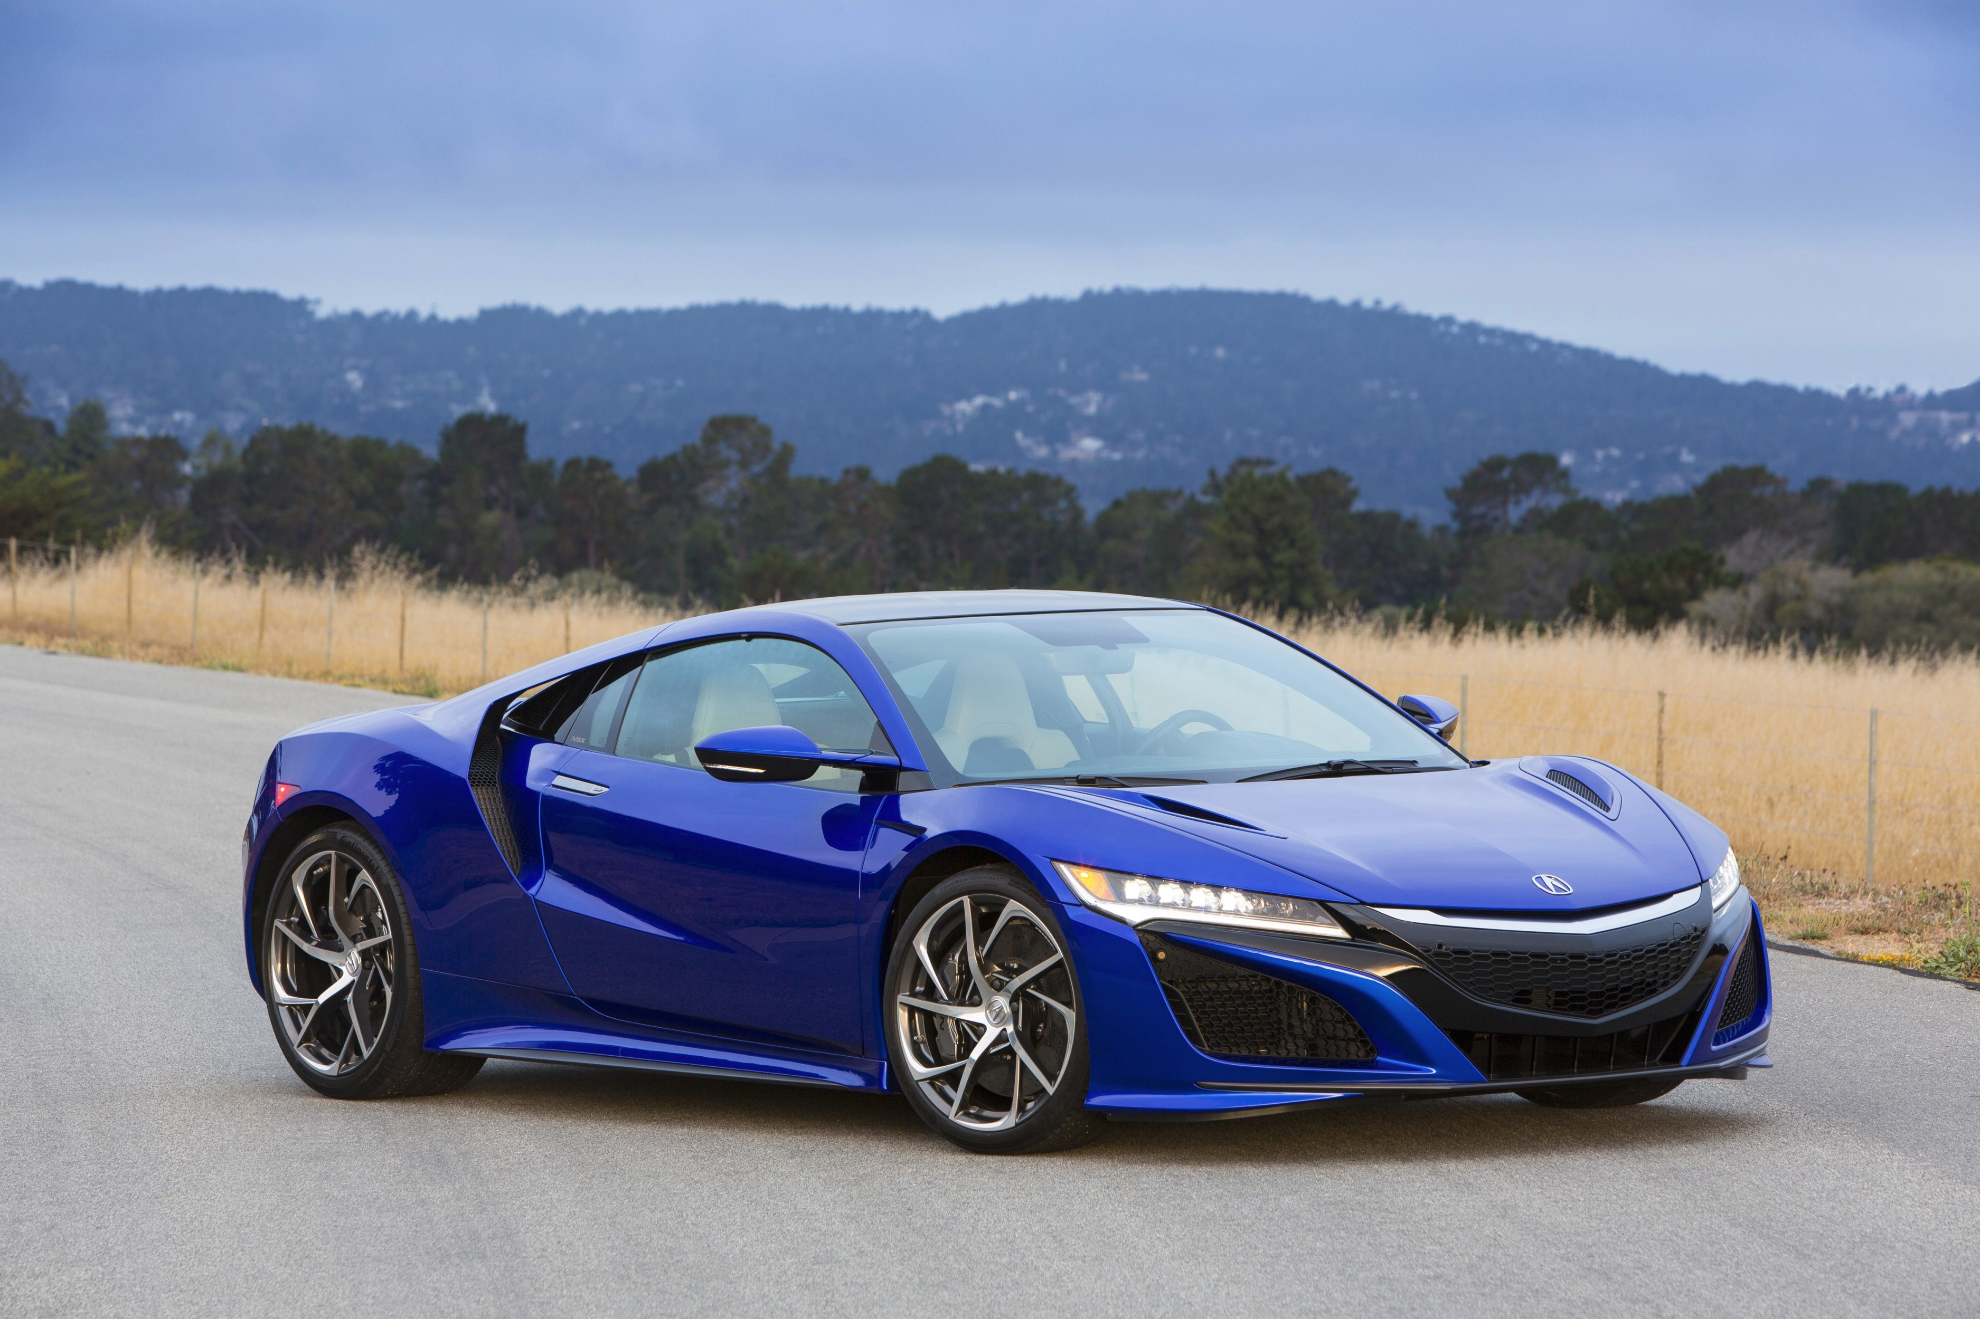 Honda Considers Making Type R Version Of NSX All Electric Variant